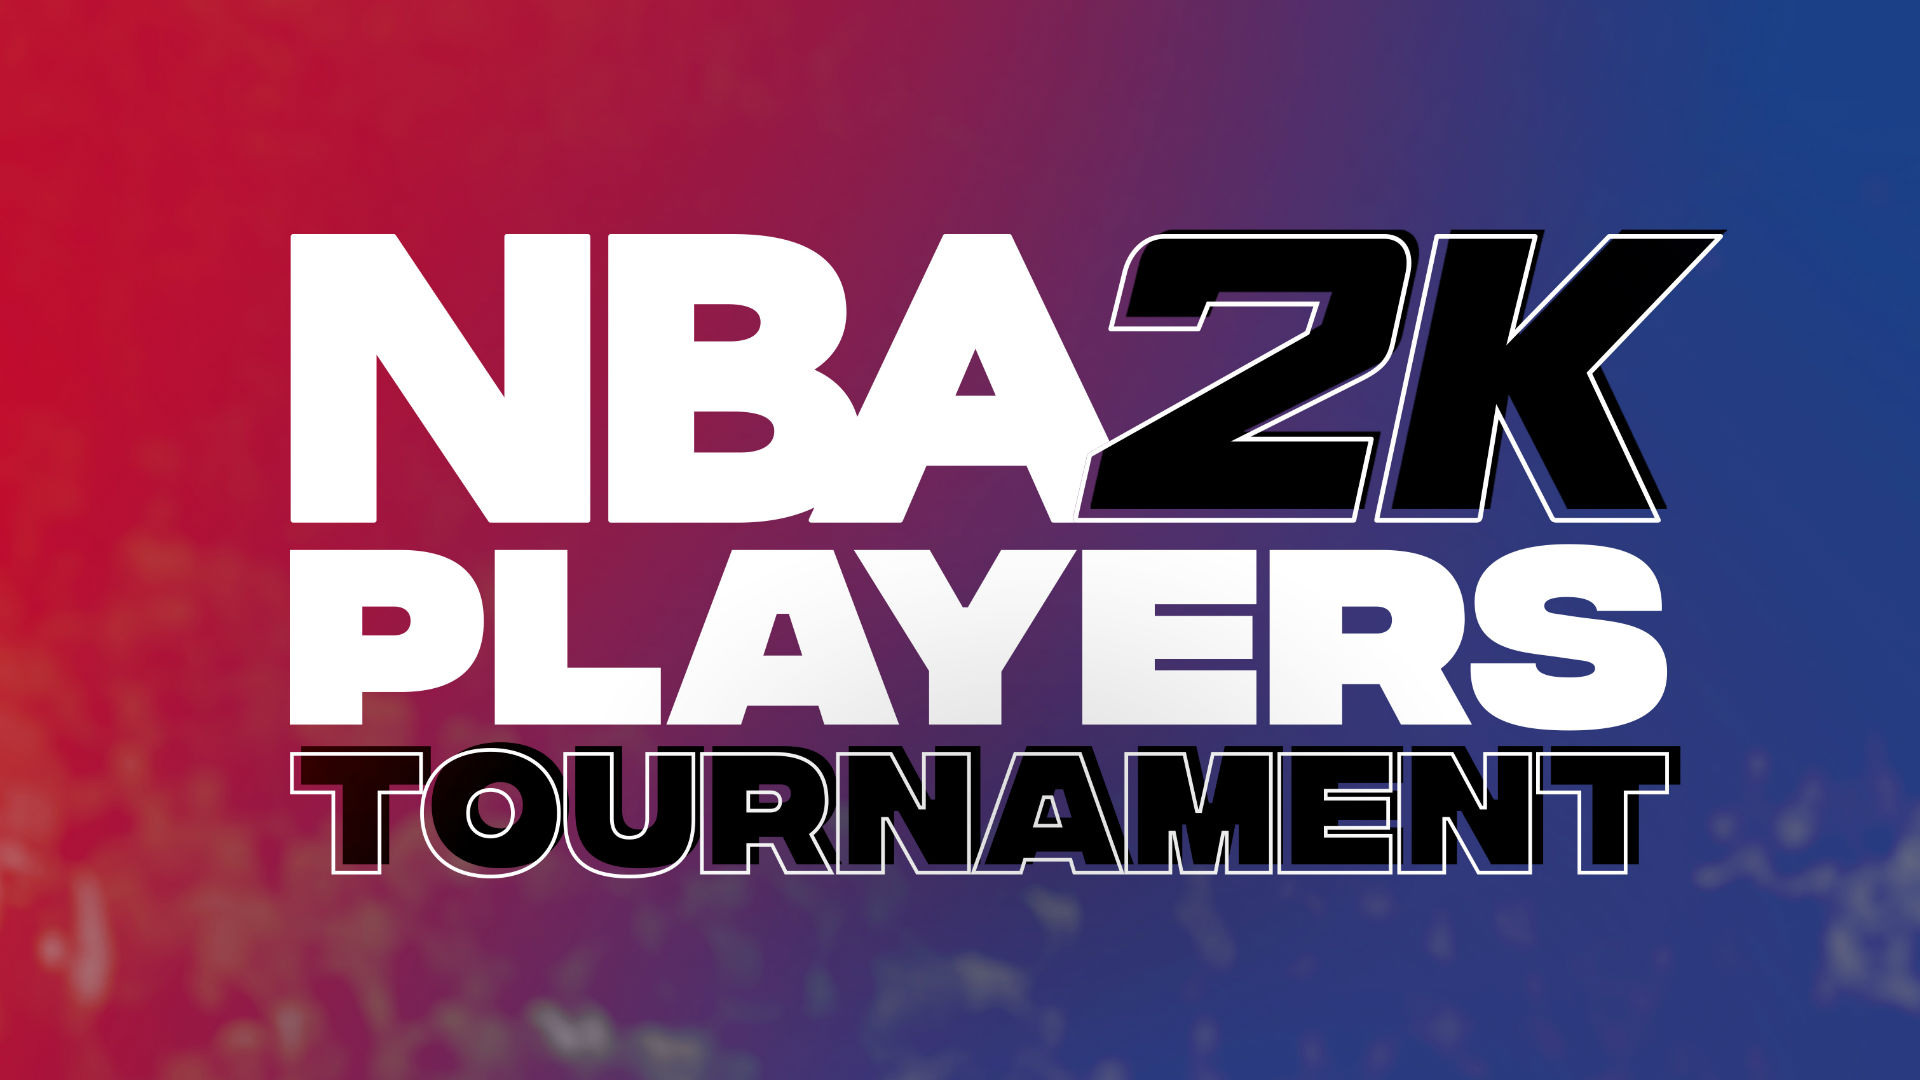 'NBA 2K' Players Tournament 2020: Full TV schedule, bracket entry list for games on ESPN